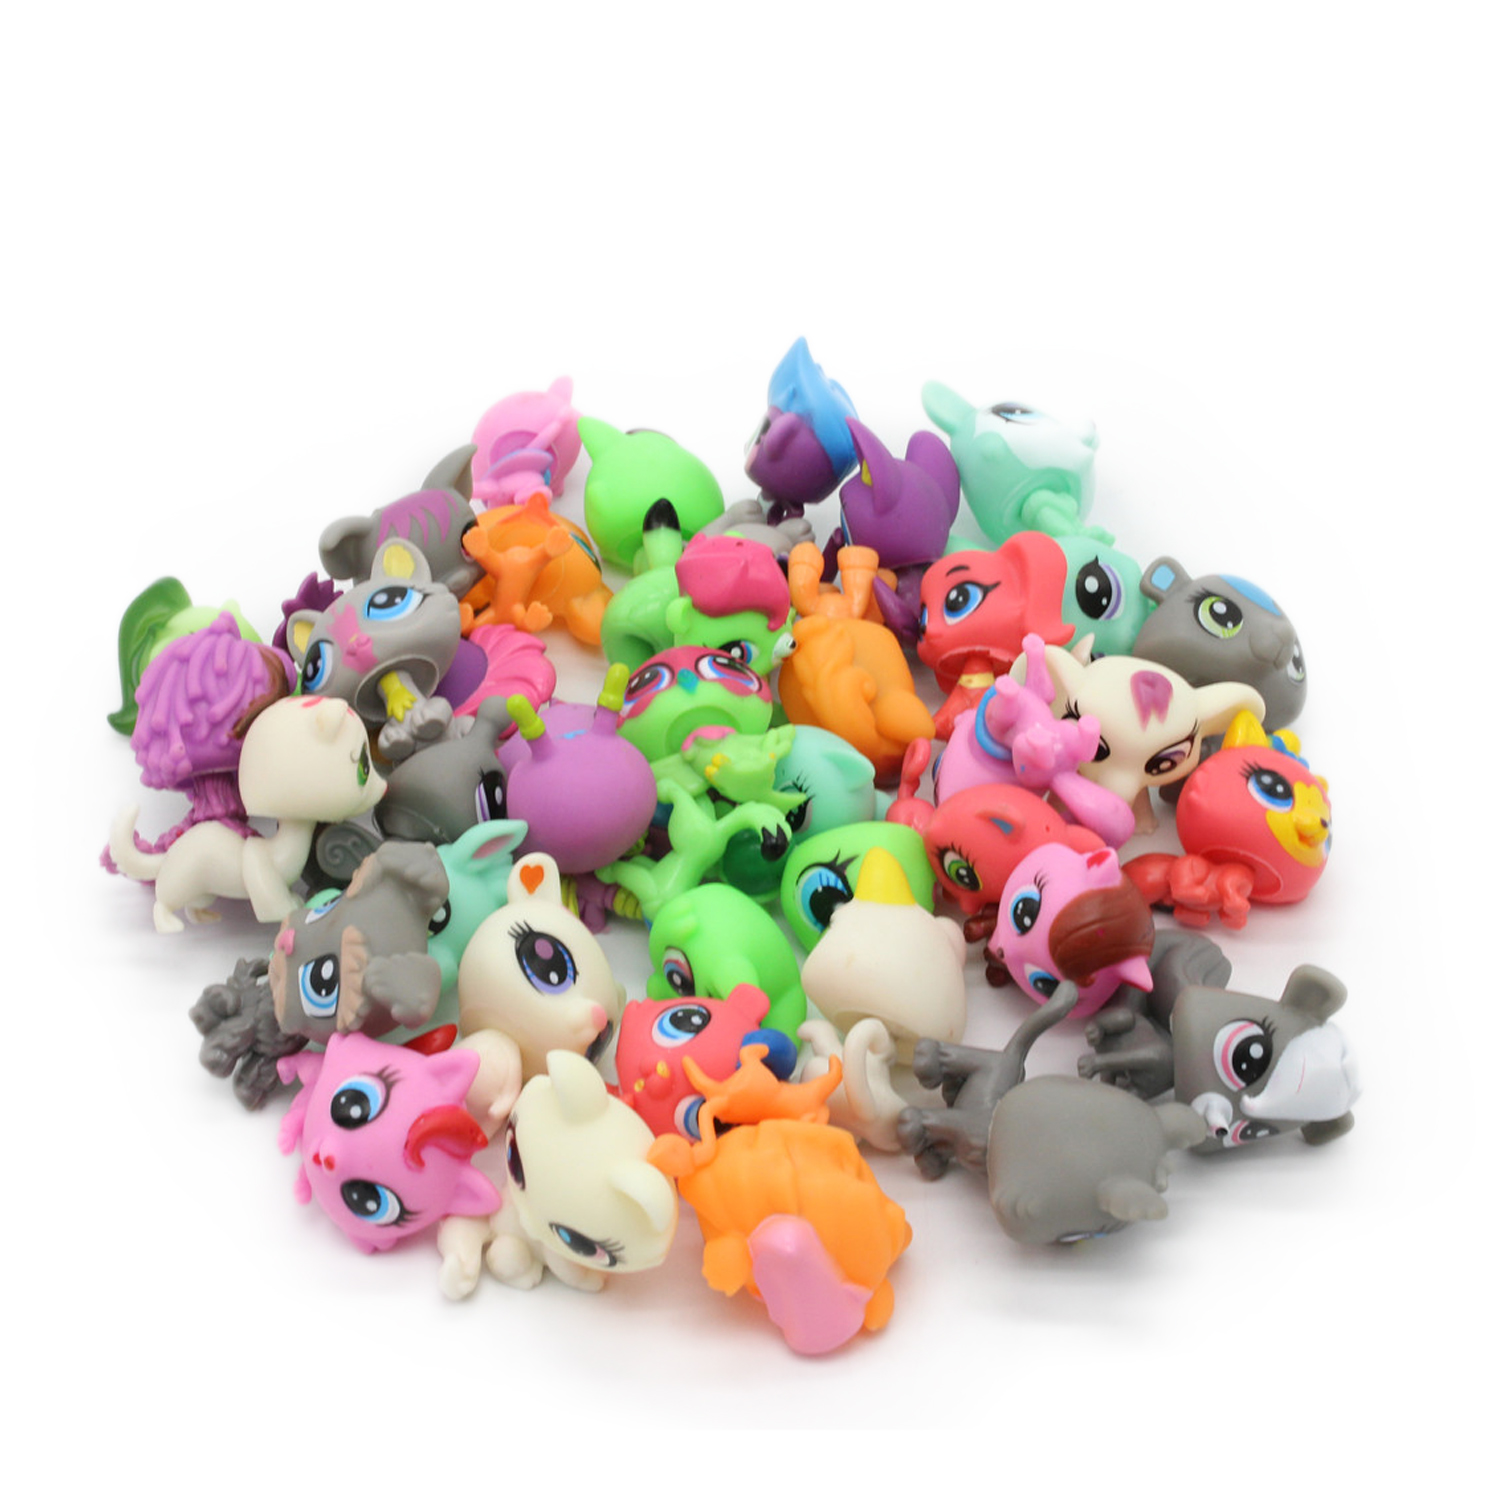 LPS New Style lps Toy bag 32Pcs/bag Little Pet Shop Mini Toy Animal Cat patrulla canina dog Action Figures Kids toys new lps lovely toys animal cartoon cat dog action figures collection kids toys gifts